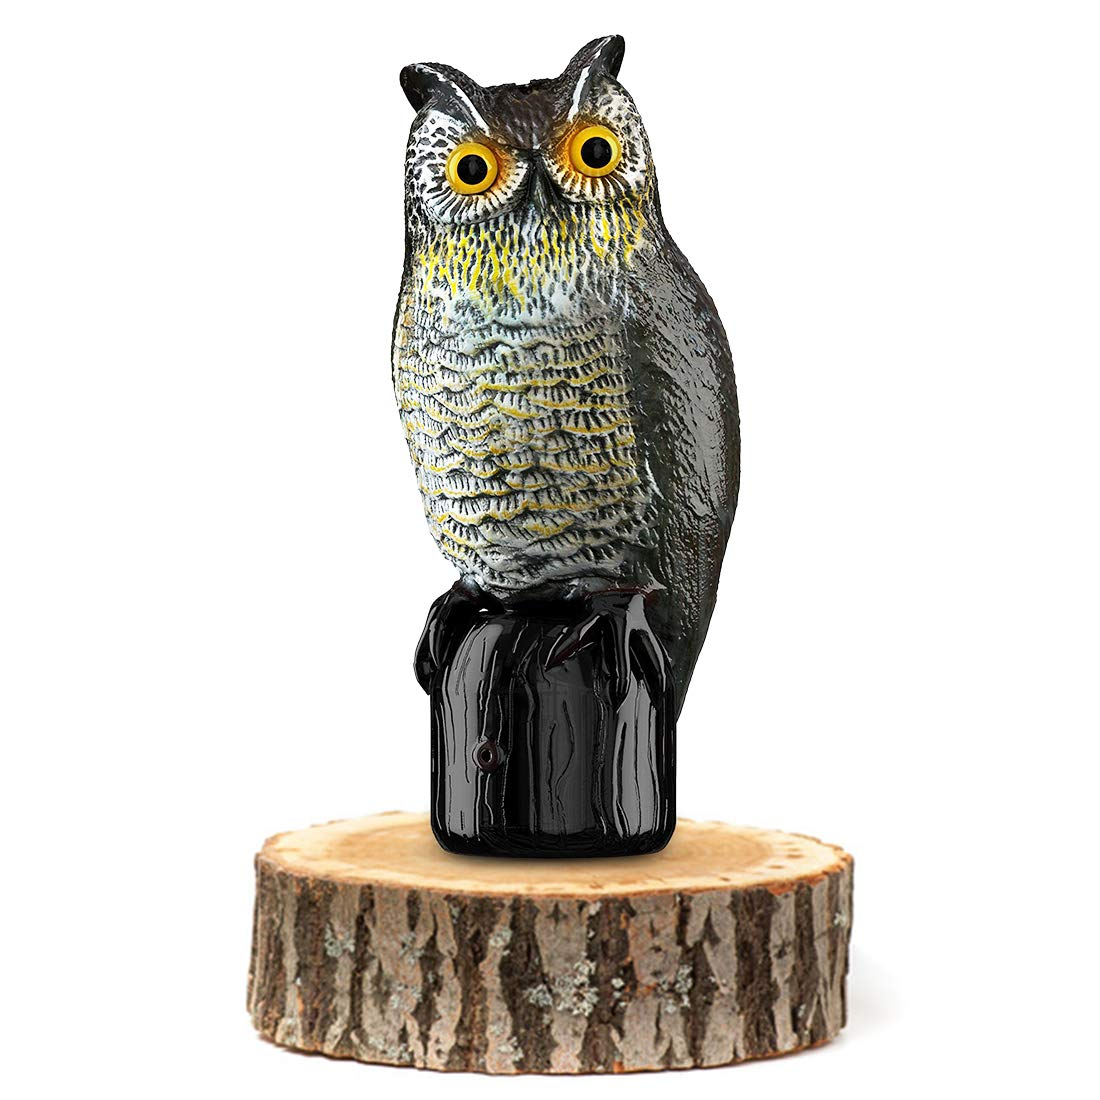 Premium Bird Repellent Fake Owl Decoy for Garden 16 in. tall - Motion Activated & Solar Powered Scarecrow Diverter - Flashing Eyes & Frightening Sound - For Birds, Mice, Squirrels, Rabbits & more by BRITENWAY